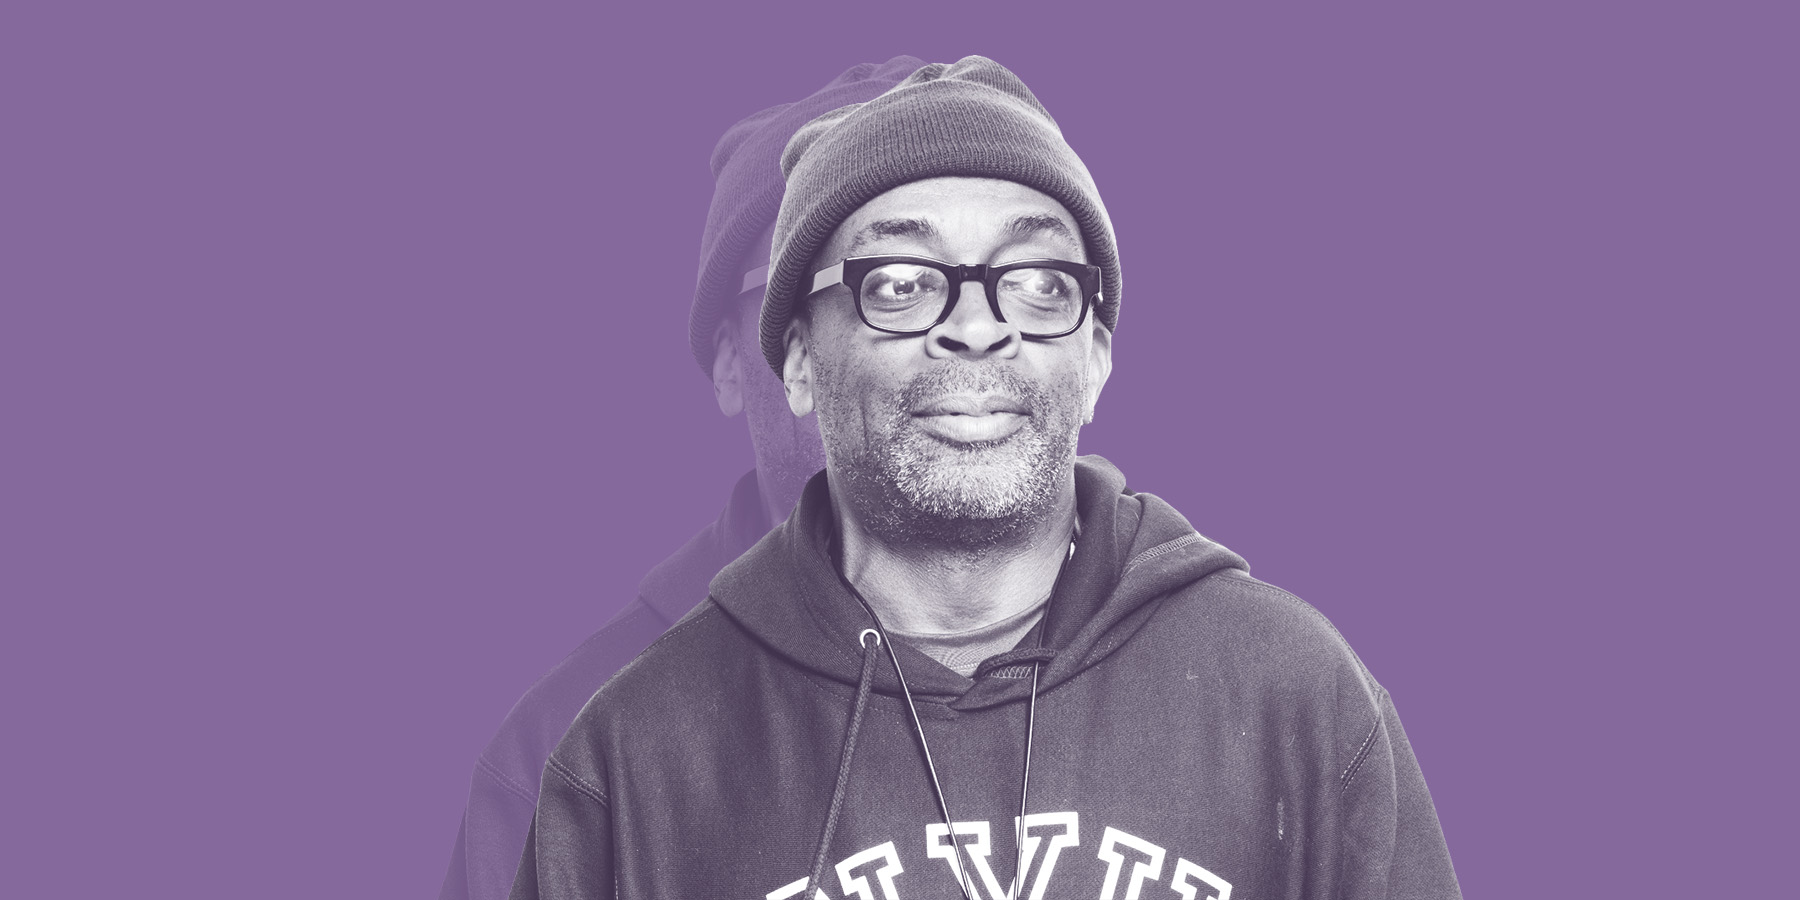 Spike Lee Just Took A Branded Content Job So Here Are 10